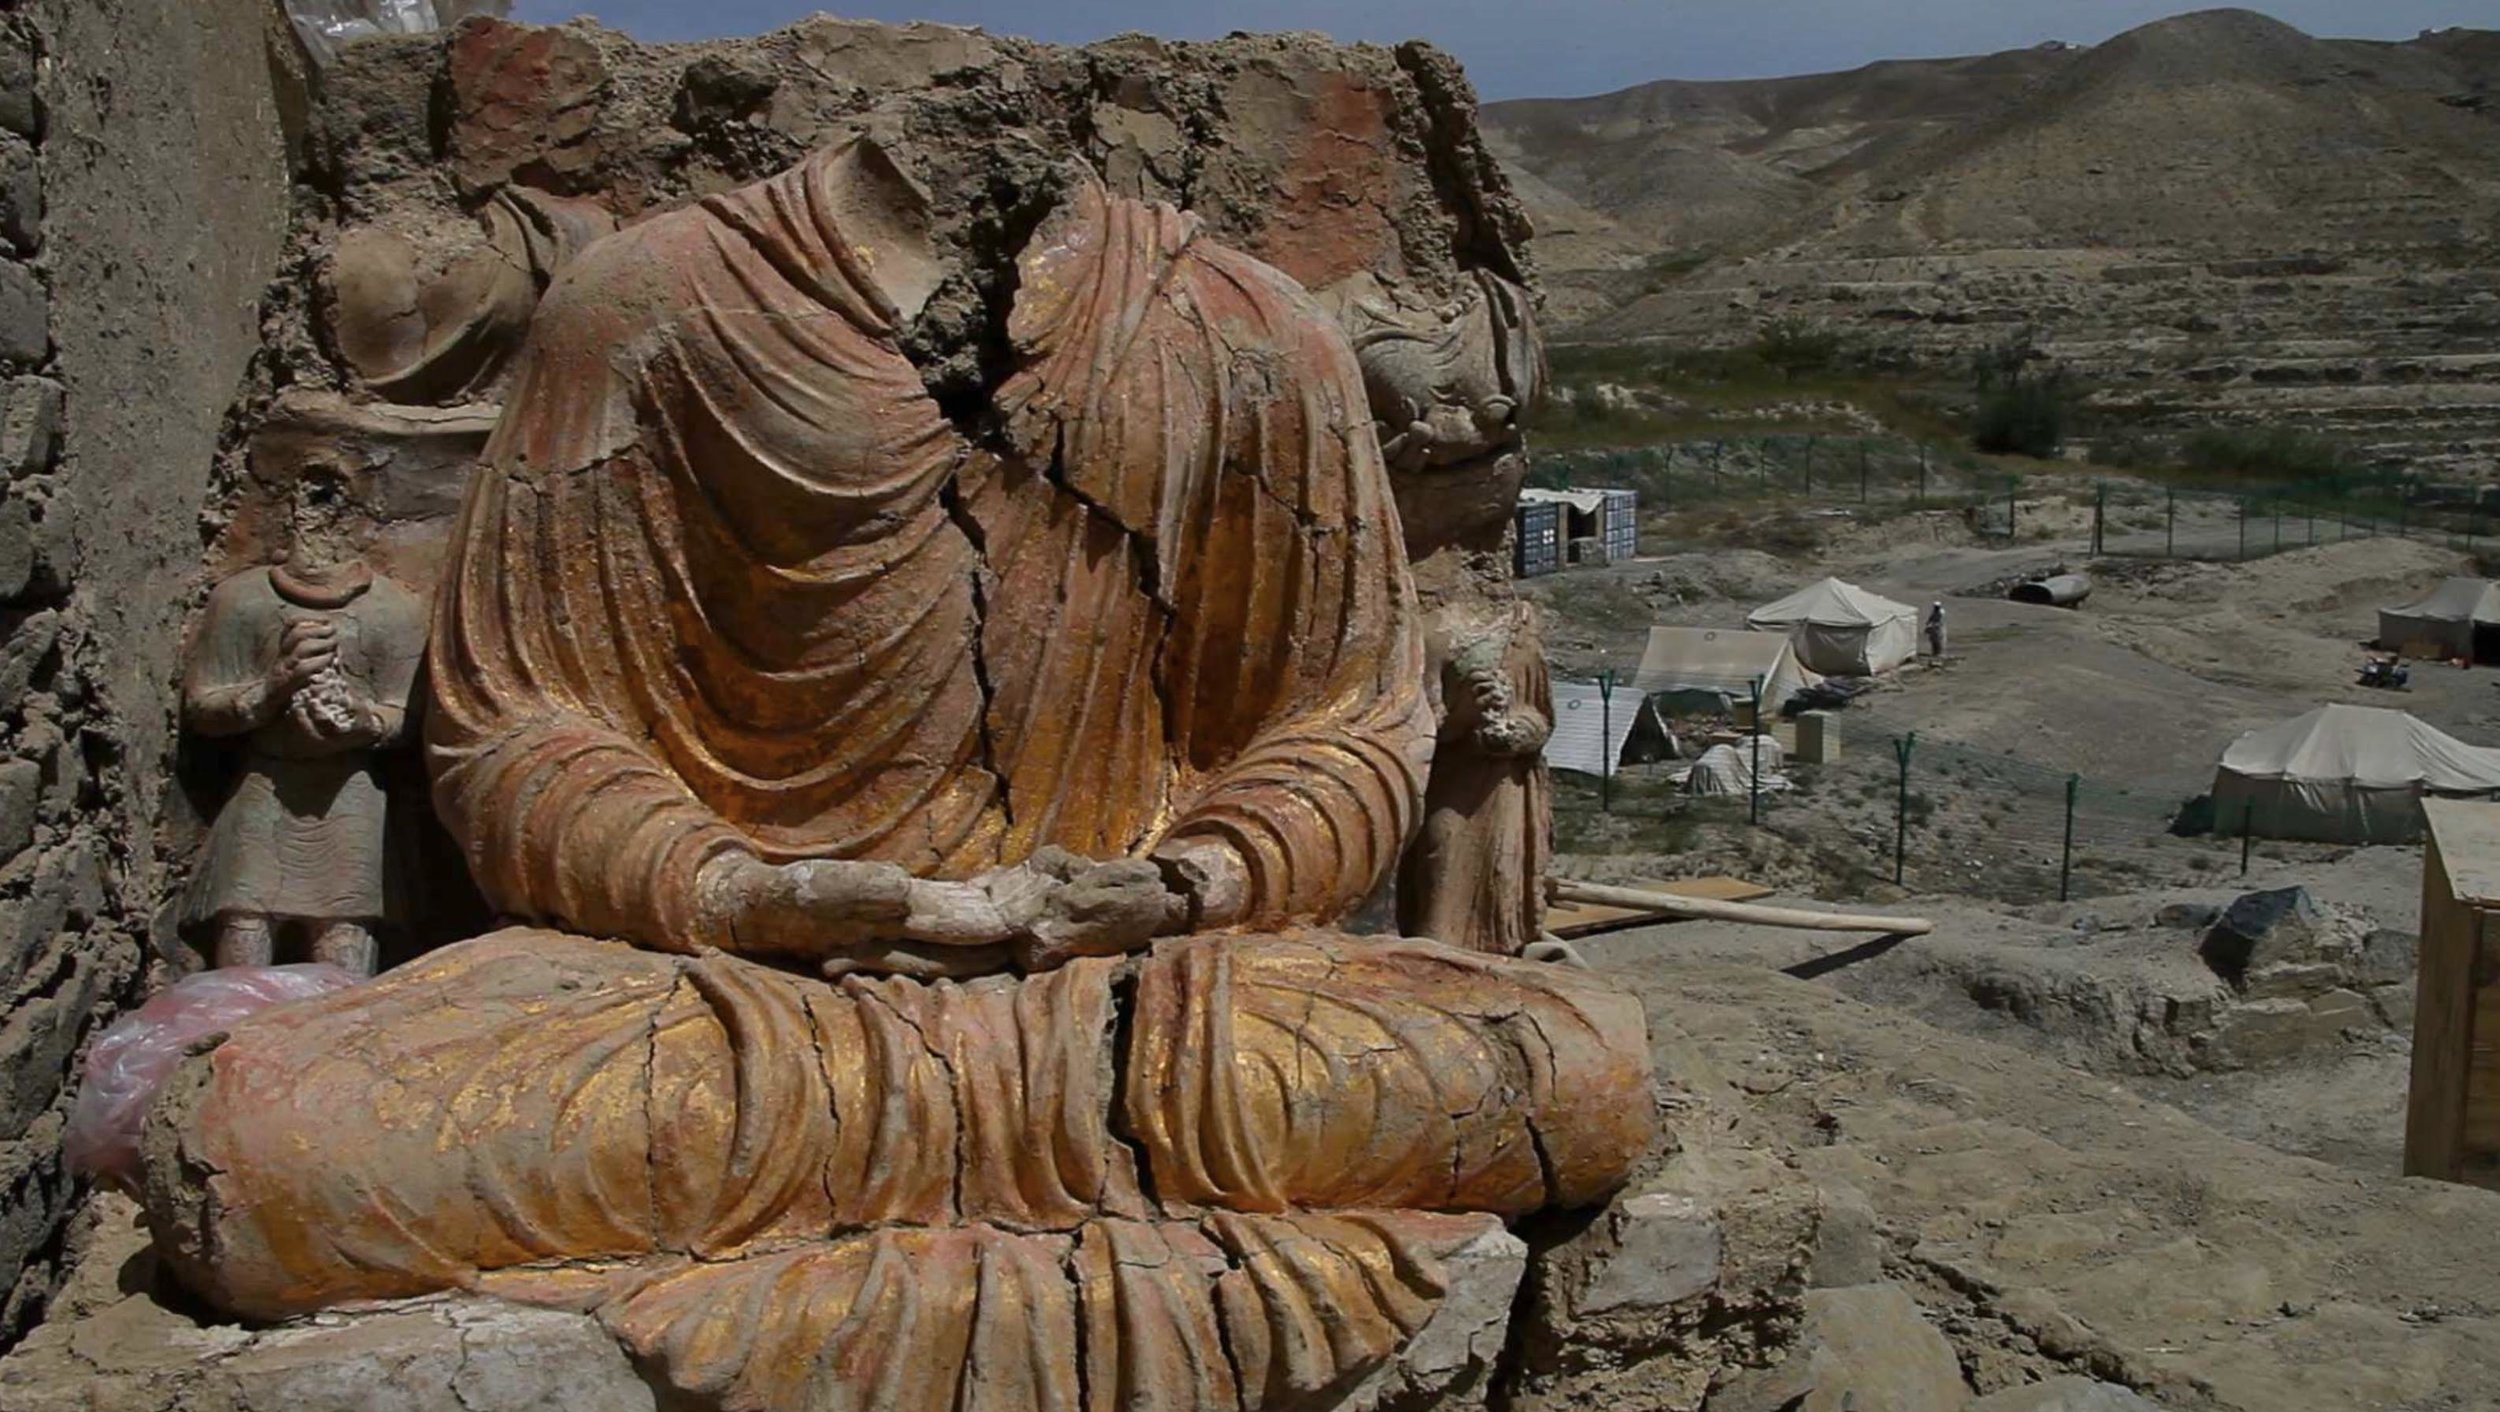 """Afghan Archaeologists Risk Lives to Save Ancient Buddhist City - Mes Aynak is a site 40 km southeast of Kabul, which contains Afghanistan's largest copper deposit. It also houses the remains of an ancient buddhist settlement with over 400 Buddha statues, stupas and a100 acre monastery complex.In 2007, a 30-year lease was granted to a mining company. The ancient Buddhist ruins, along with irreplaceable historical treasures, were scheduled to be destroyed. Racing against time, and against the threats of taliban abductions, landmines, and insurgents from Pakistan, Afghan archaeologists risk their lives daily to preserve and uncover the priceless cultural heritage of the ancient Buddhist city before it is obliterated by mining operations.Courageous story told in documentary """"Saving Mes Aynak,"""" a documentary directed by Brent Huffman, tells the story through of lens of Qadir Temori, the head of the Afghan archaeological department in Kabul.Huffman explains that Temori is """"braving all of this risk and being very courageous, going against the Taliban, going against this Chinese mining company, going against the bureaucracy in the country to try to save essentially the cultural heritage of Afghanistan... The heart of the fllm is really this story of Afghan archaeologists risking their lives'"""